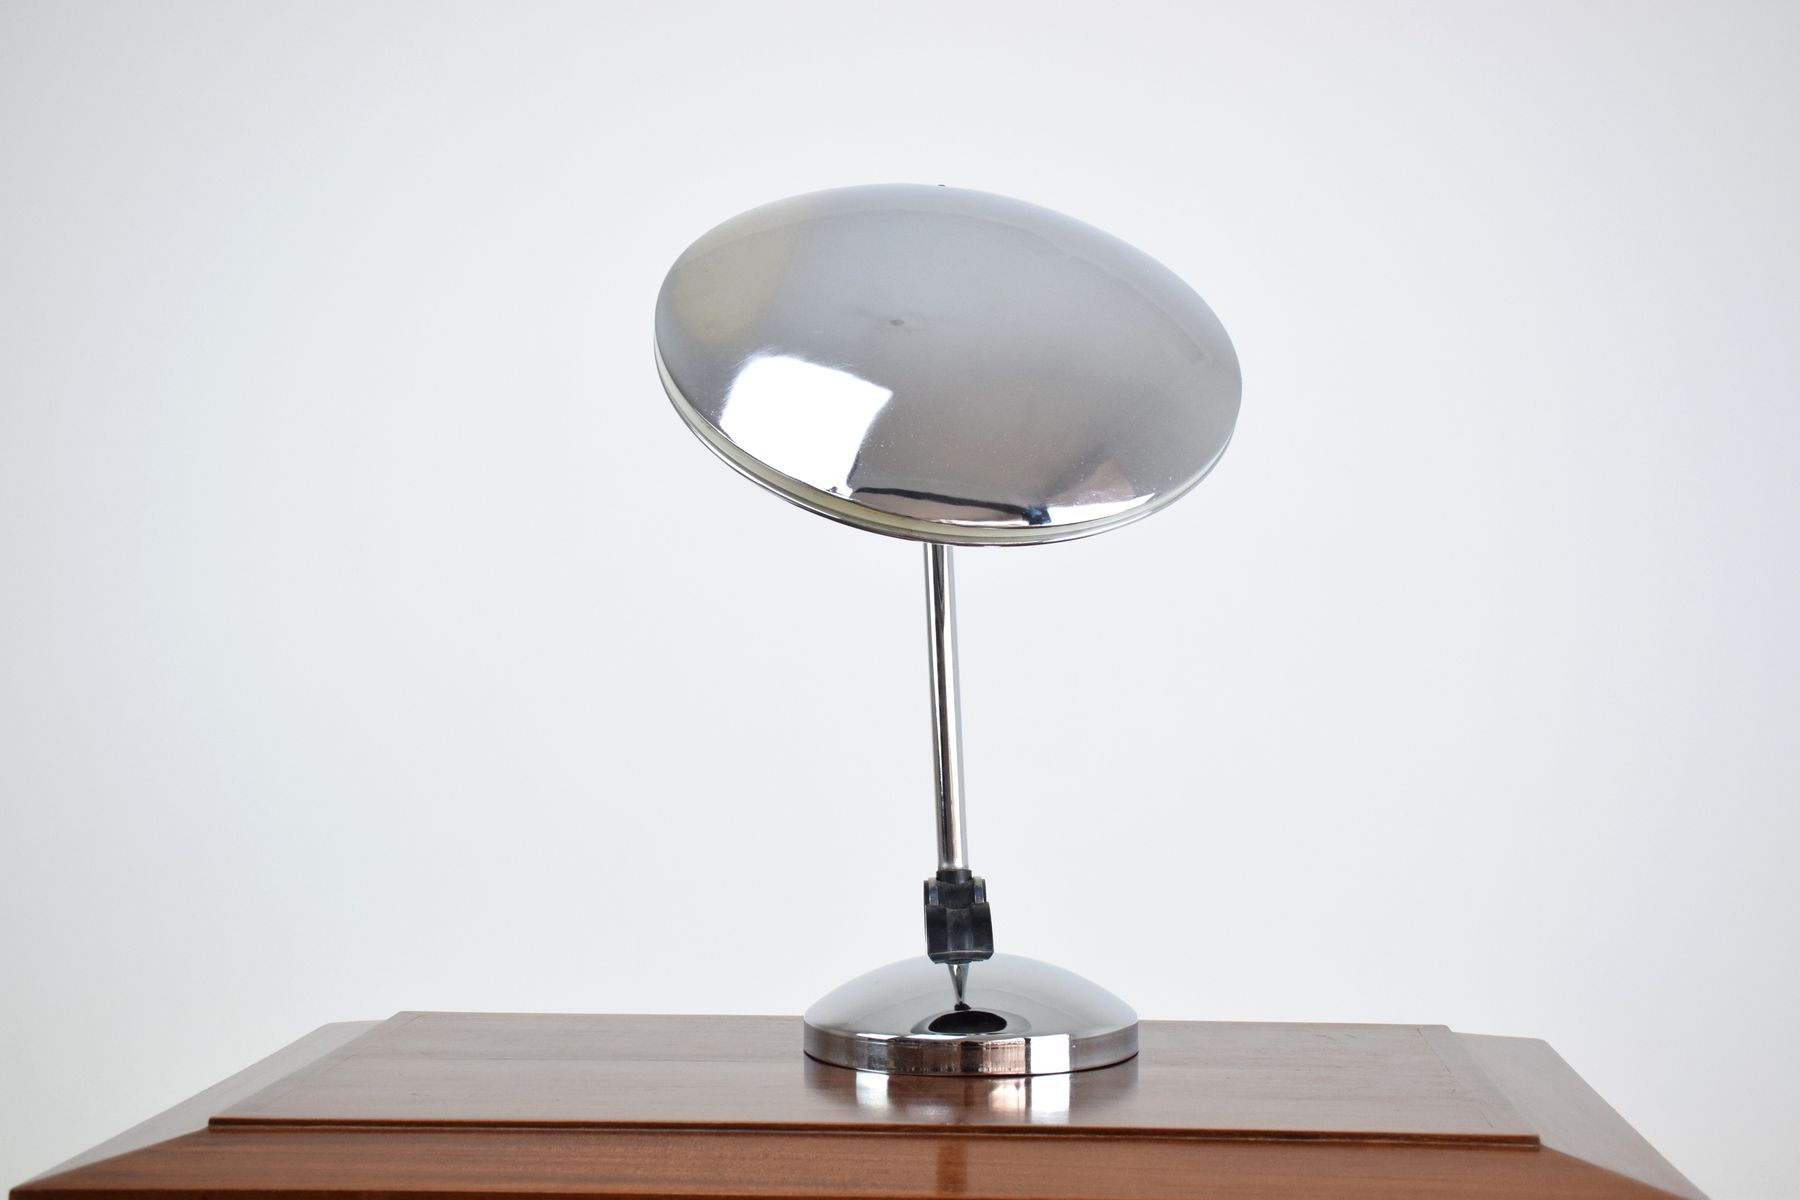 spanish chrome desk lamp from fase s for sale at pamono - spanish chrome desk lamp from fase s